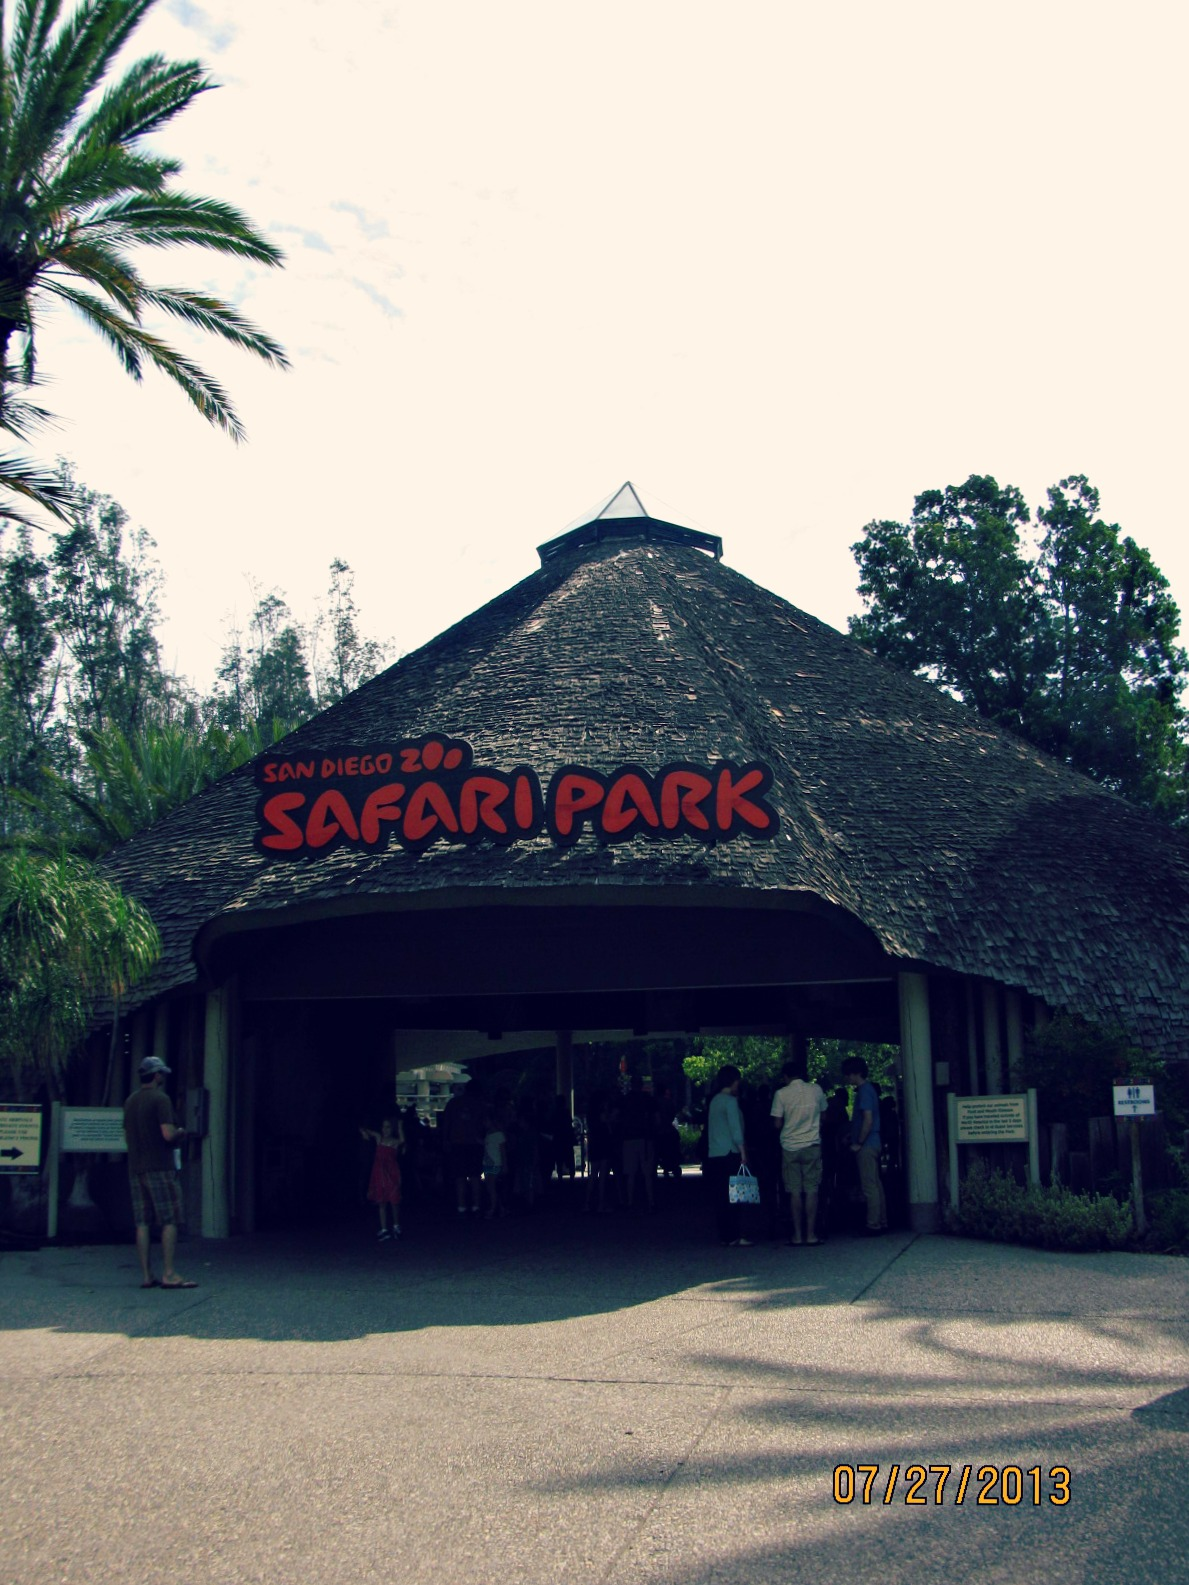 San Diego Safari Park // Entrance